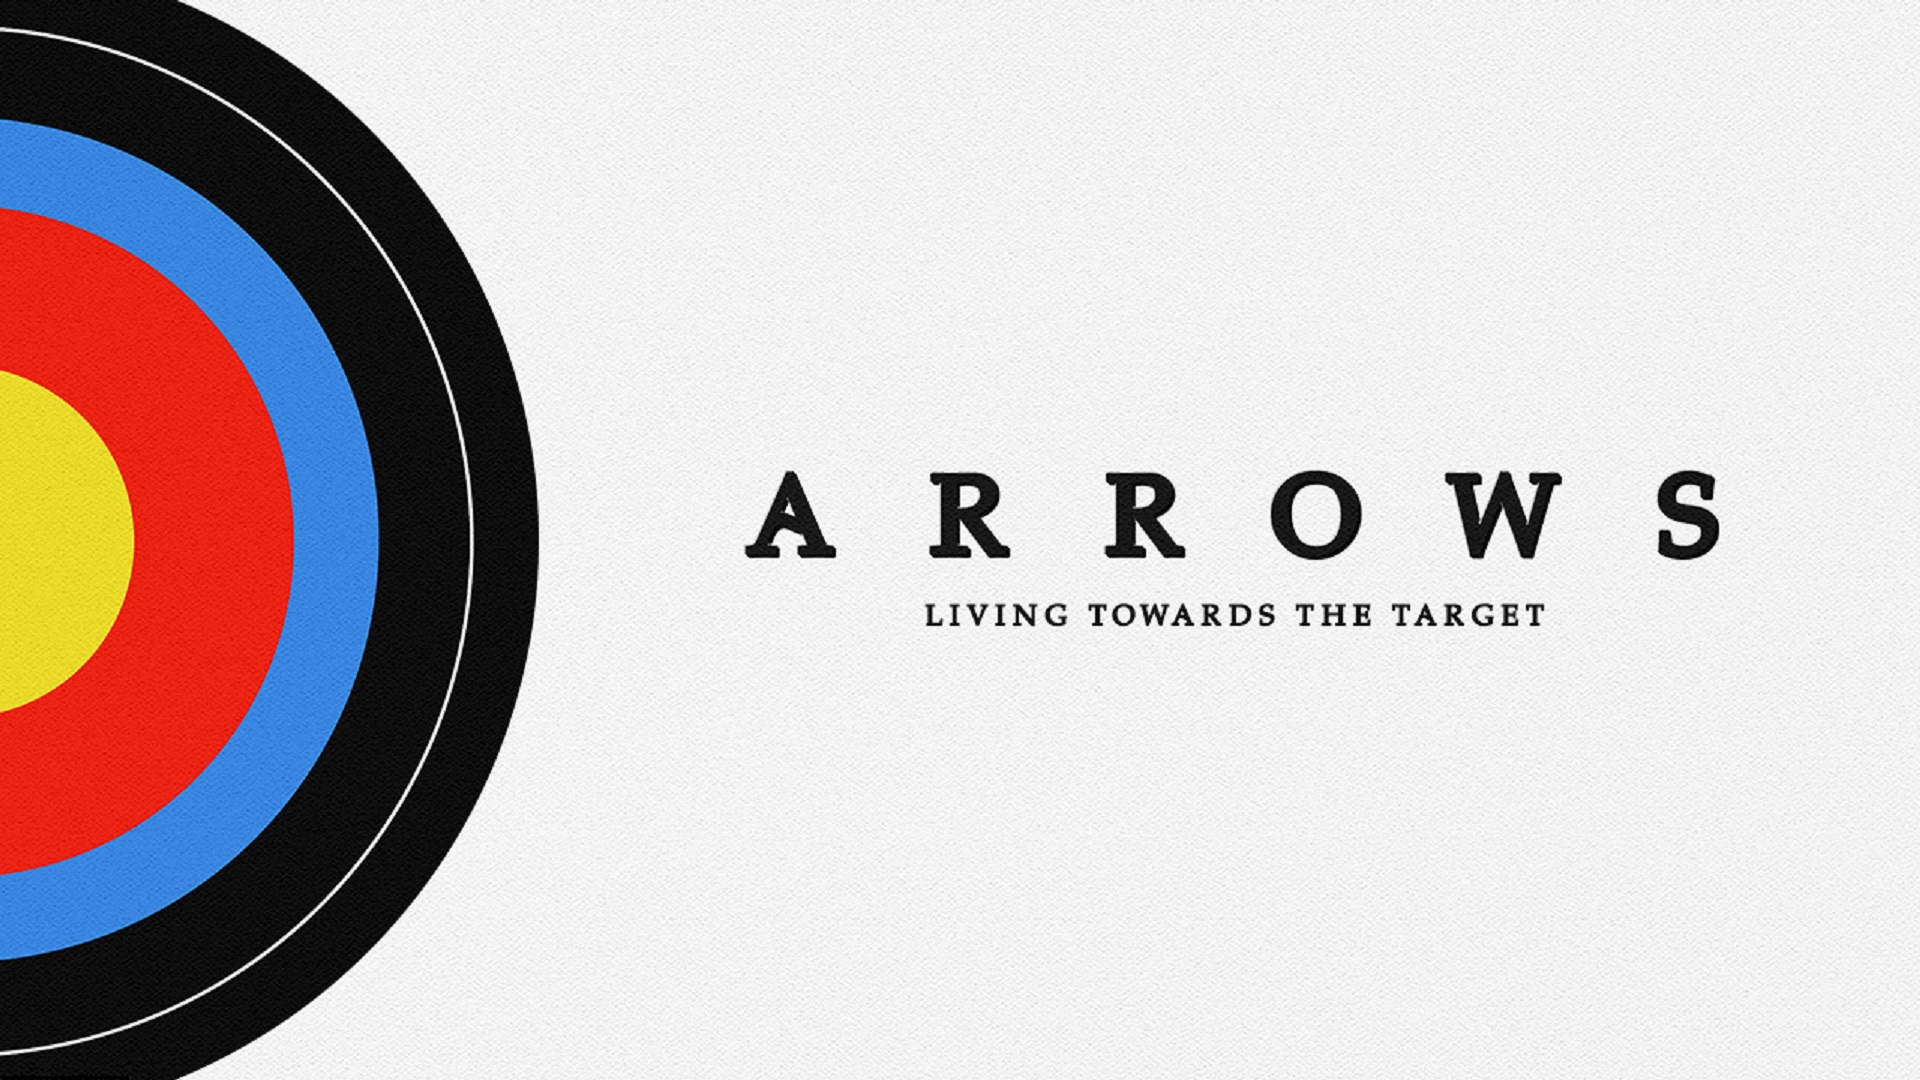 - Arrows 4: Straight Arrows-Parenting 6-12.August 18, 2019Speaker: Jim Dunn